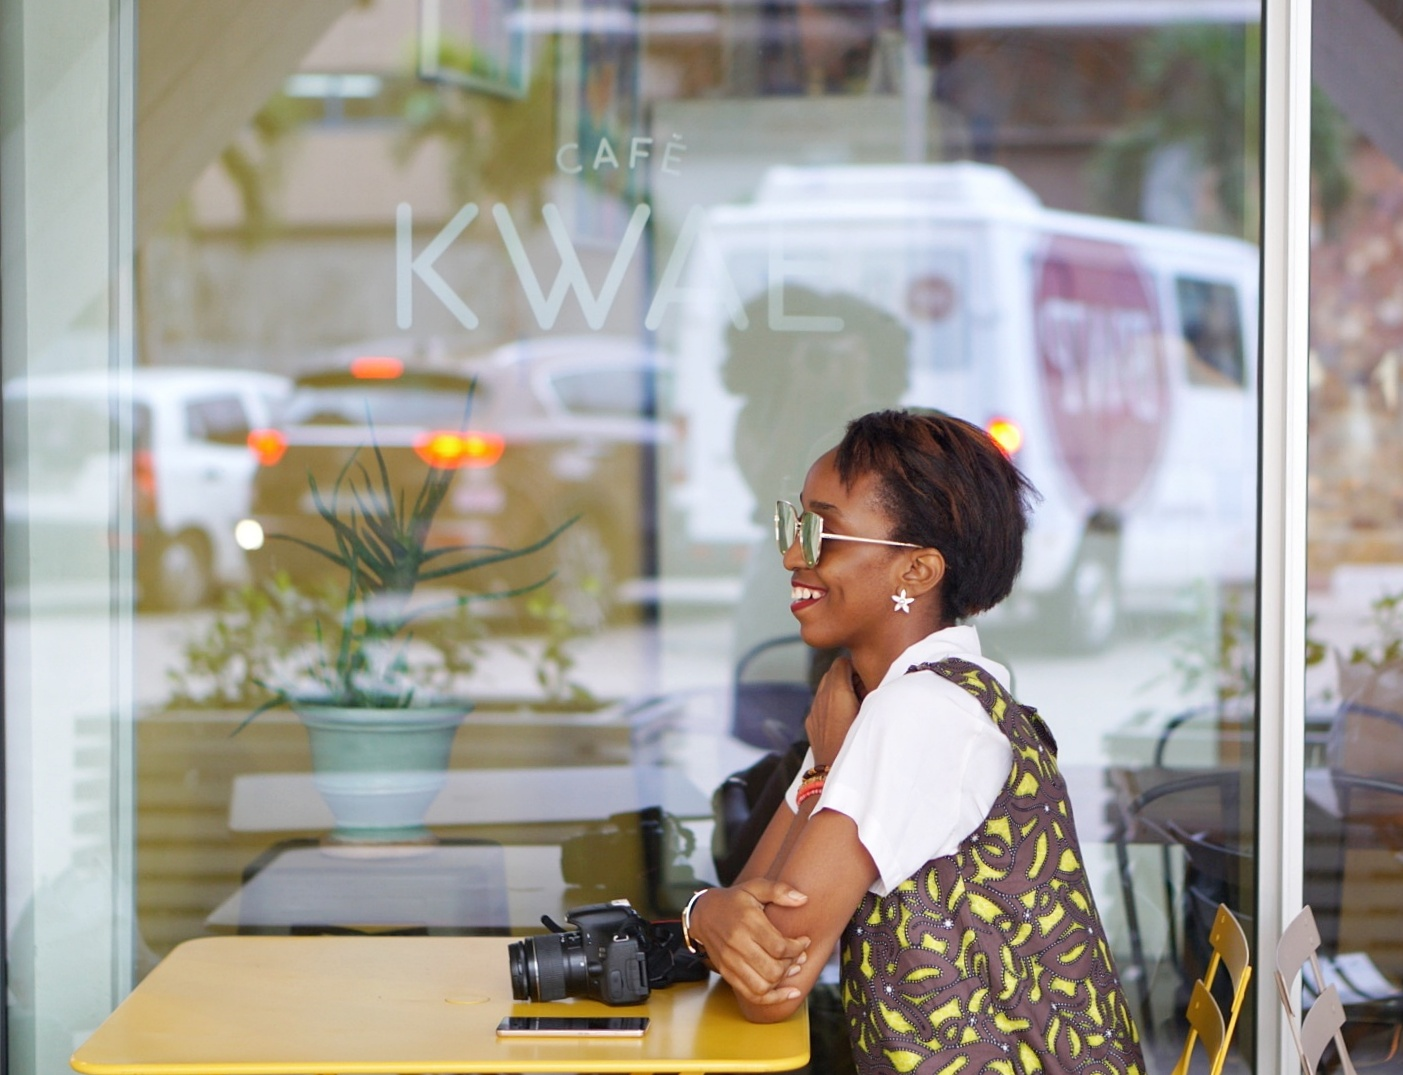 Life lessons - Nigerian blogger Cassie daves sitting at cafe kwae in Accra